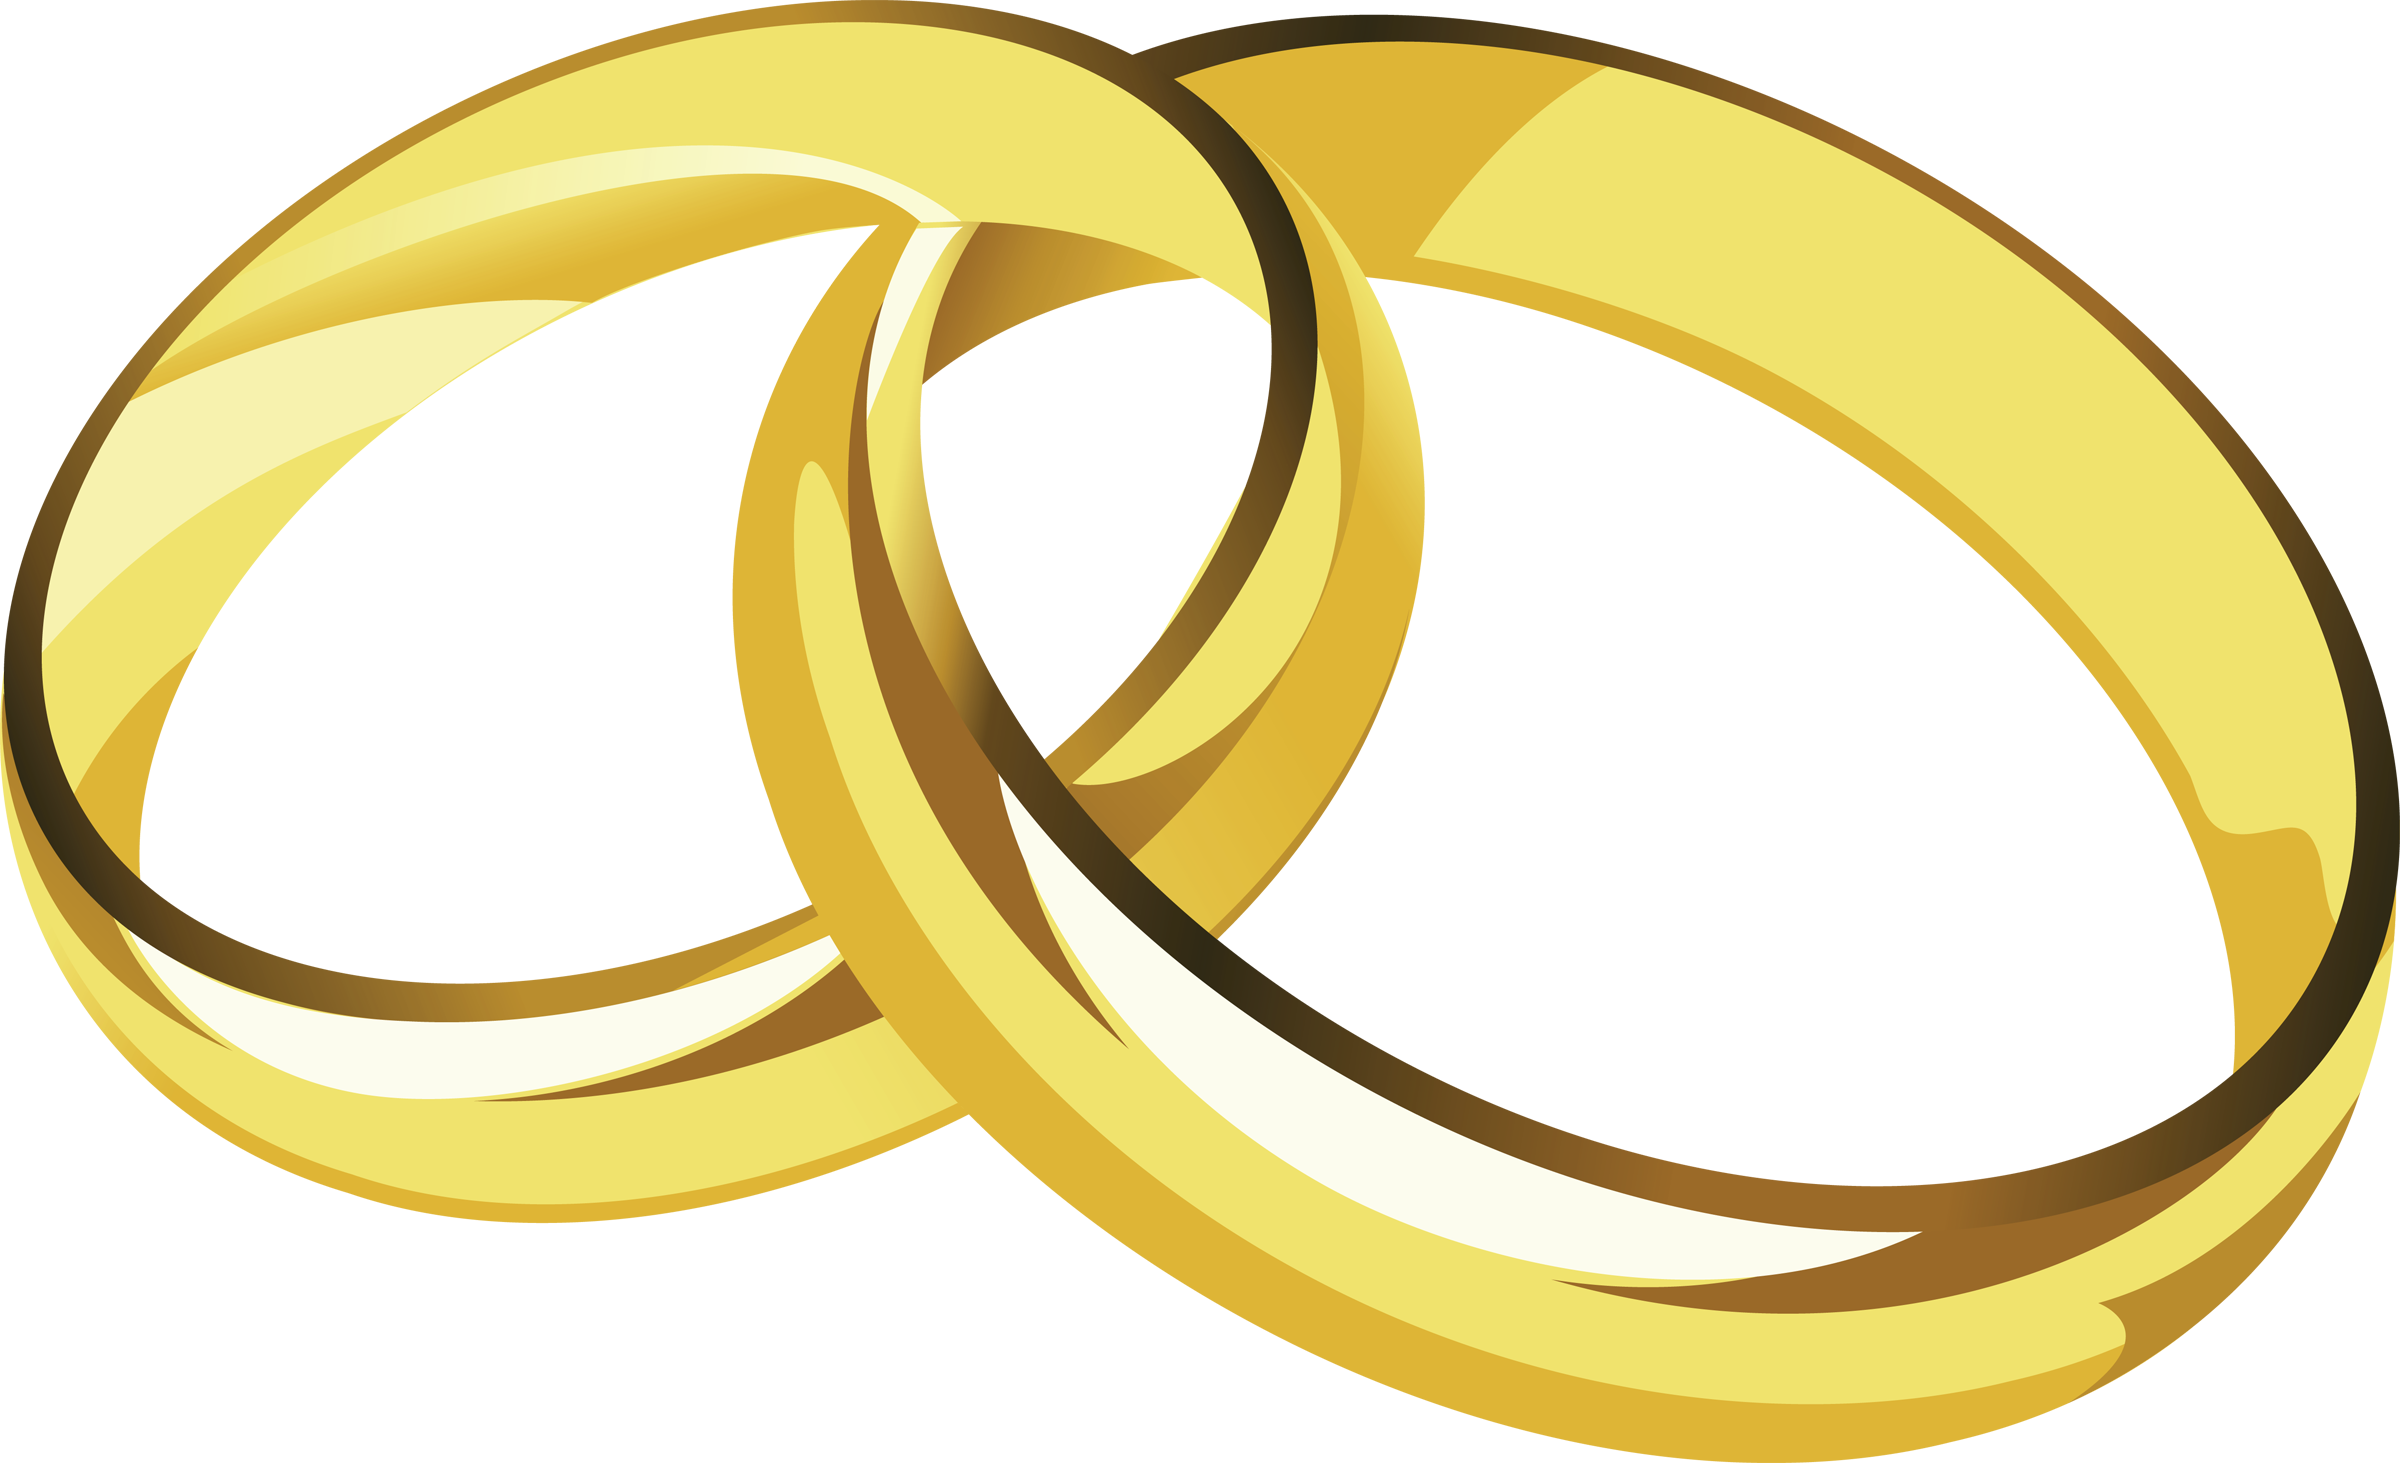 vector library download Engagement Ring Cartoon Image